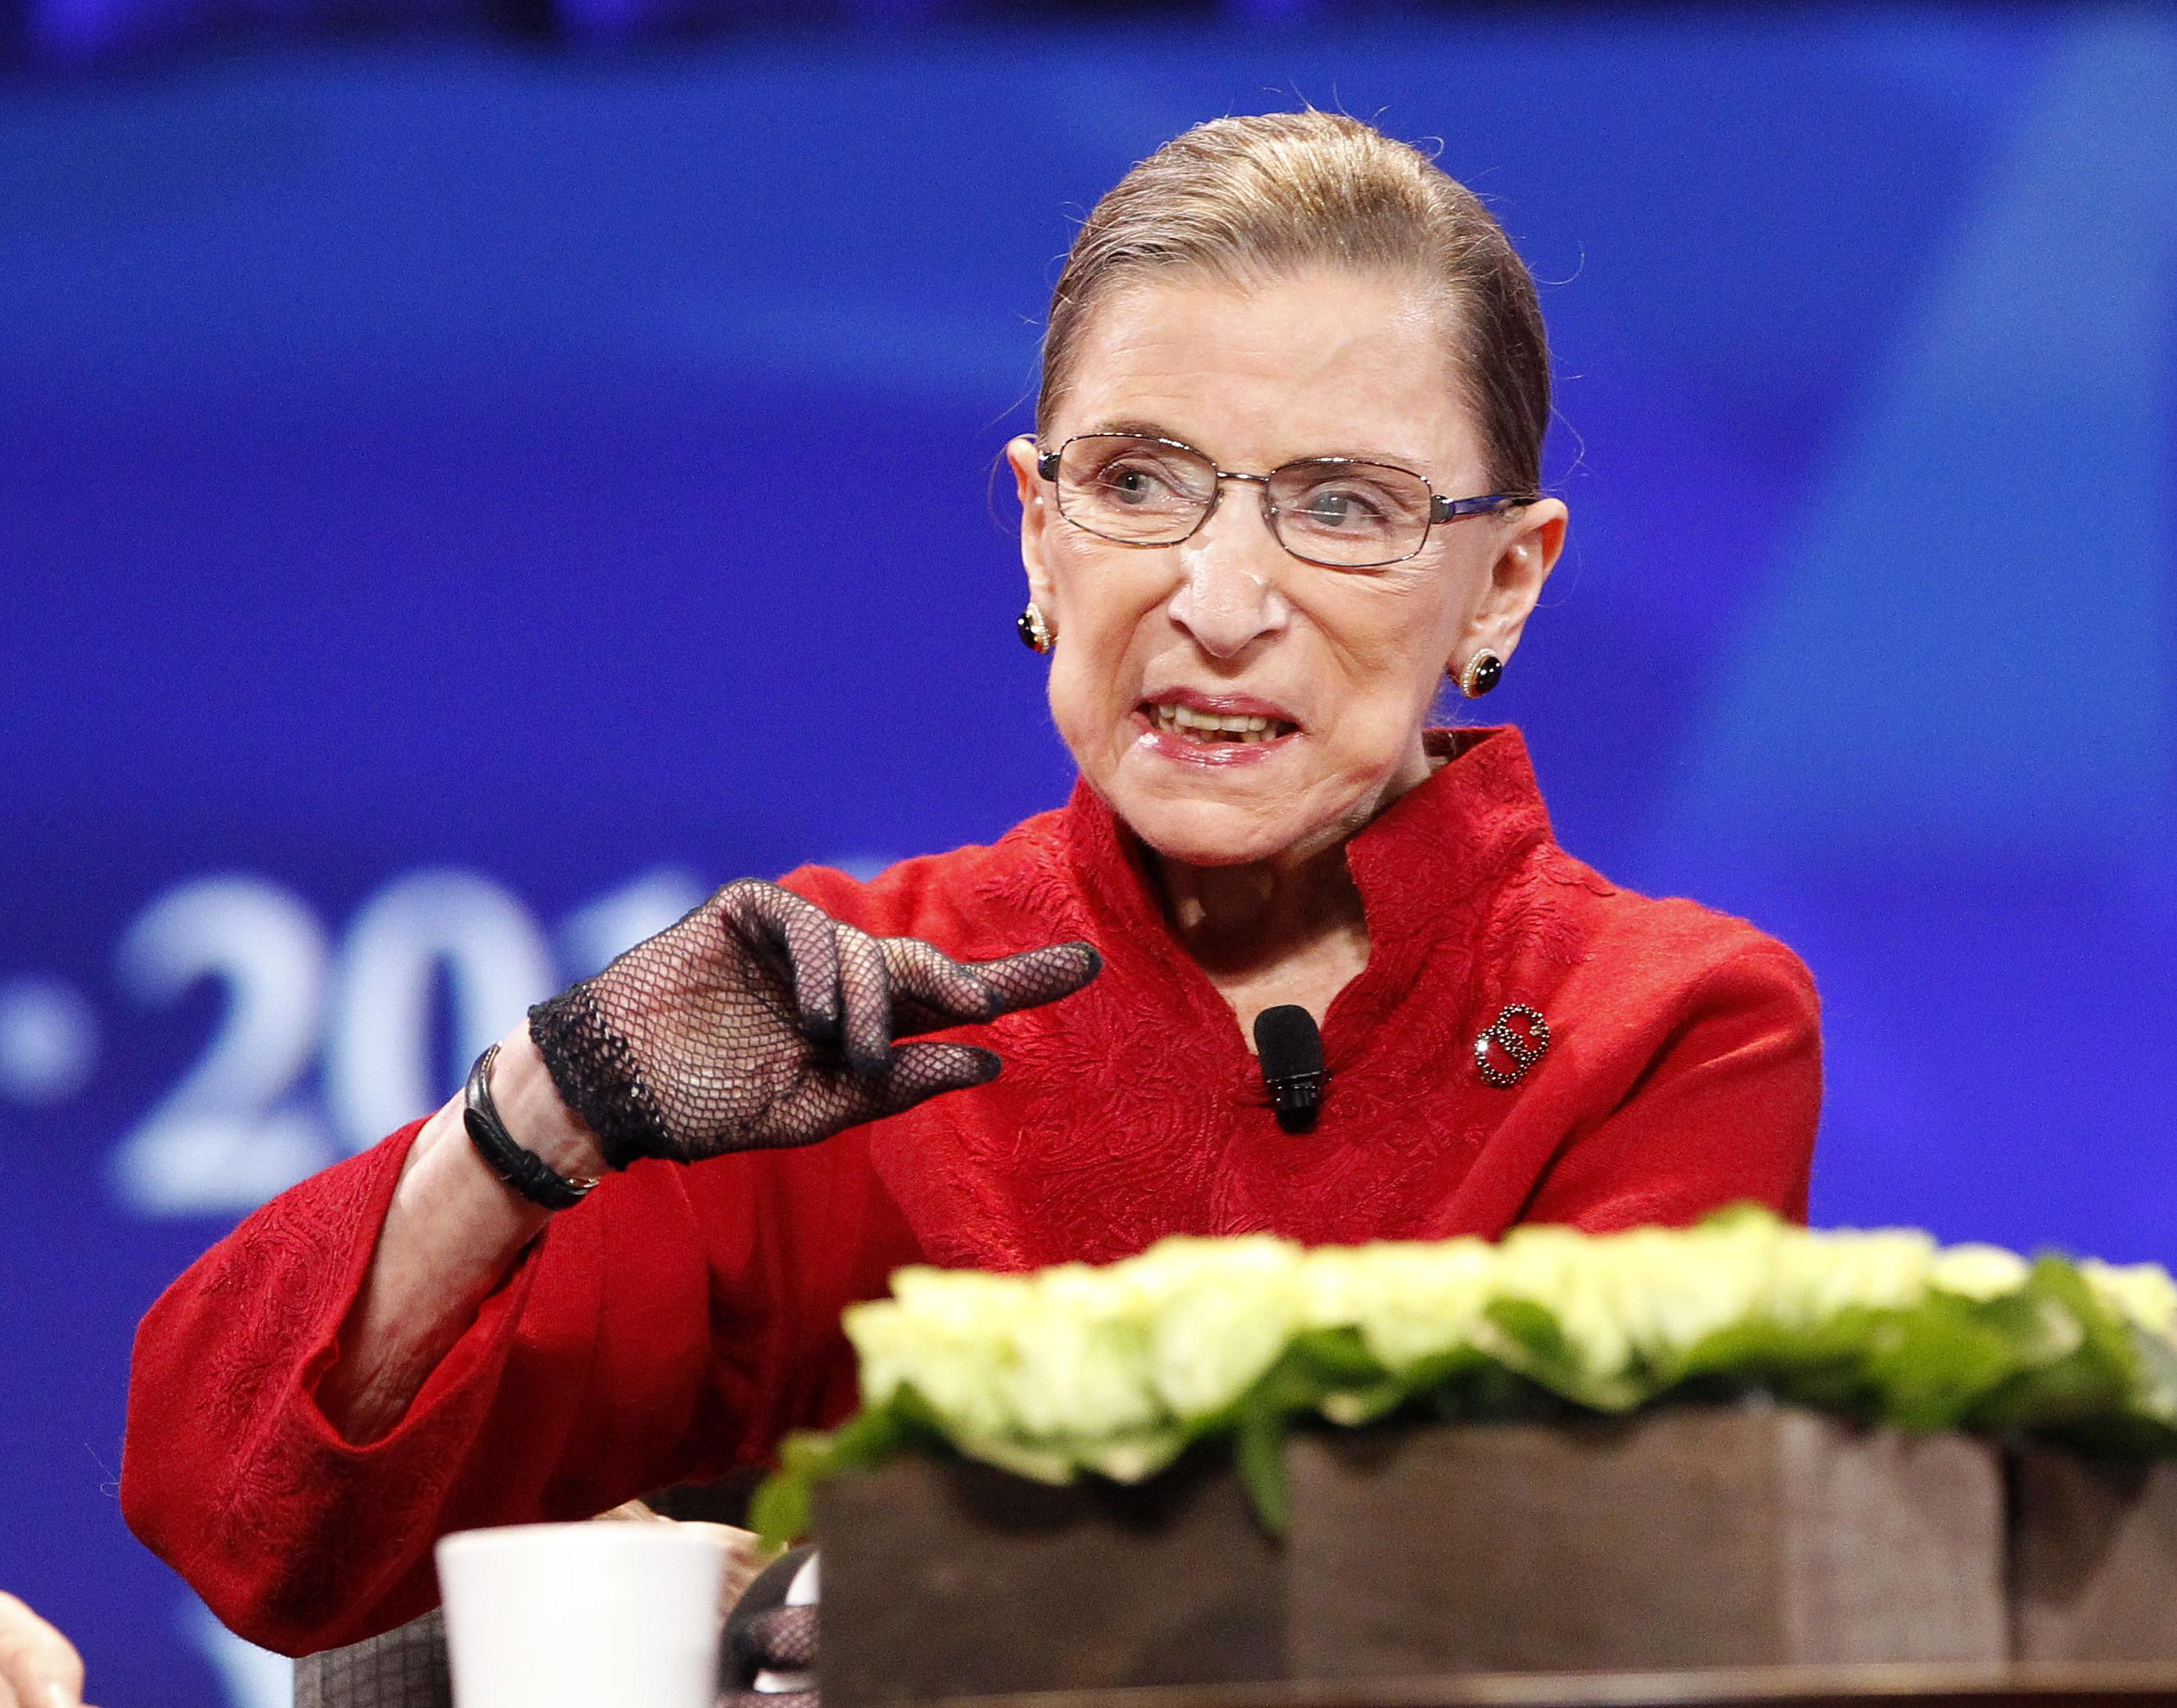 Ginsburg's passing sets off a political firestorm